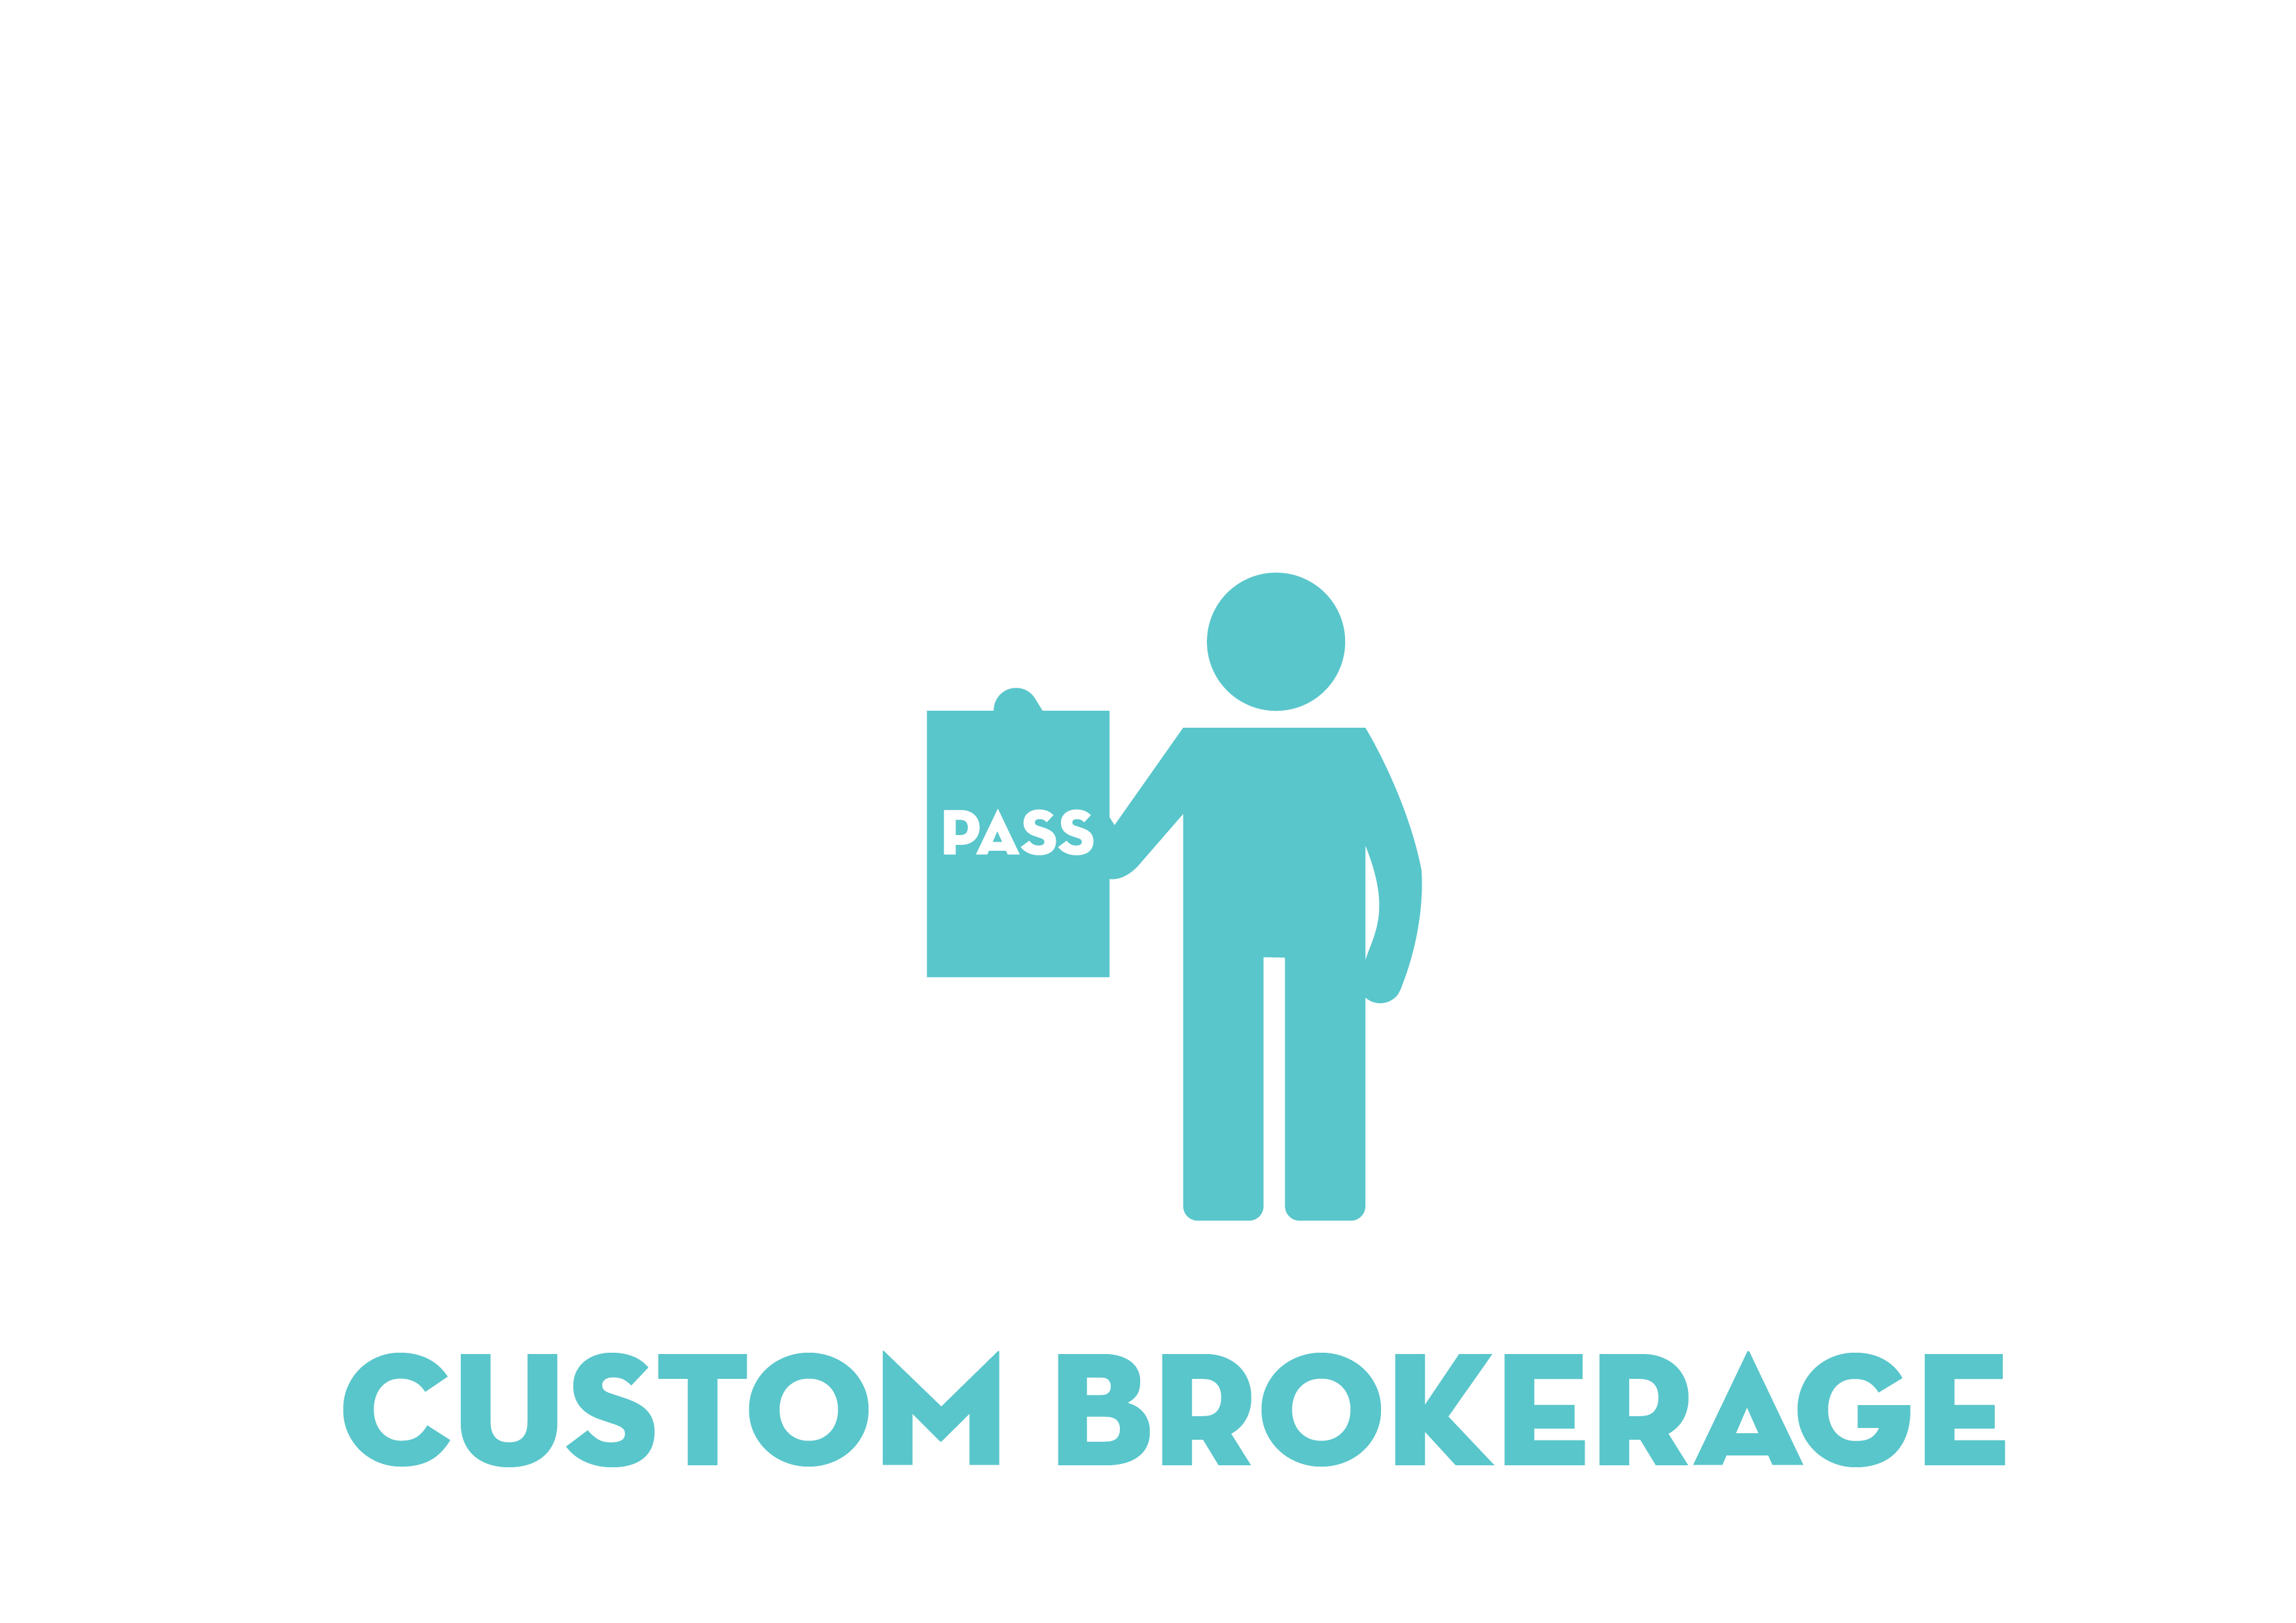 Custom Brokerage